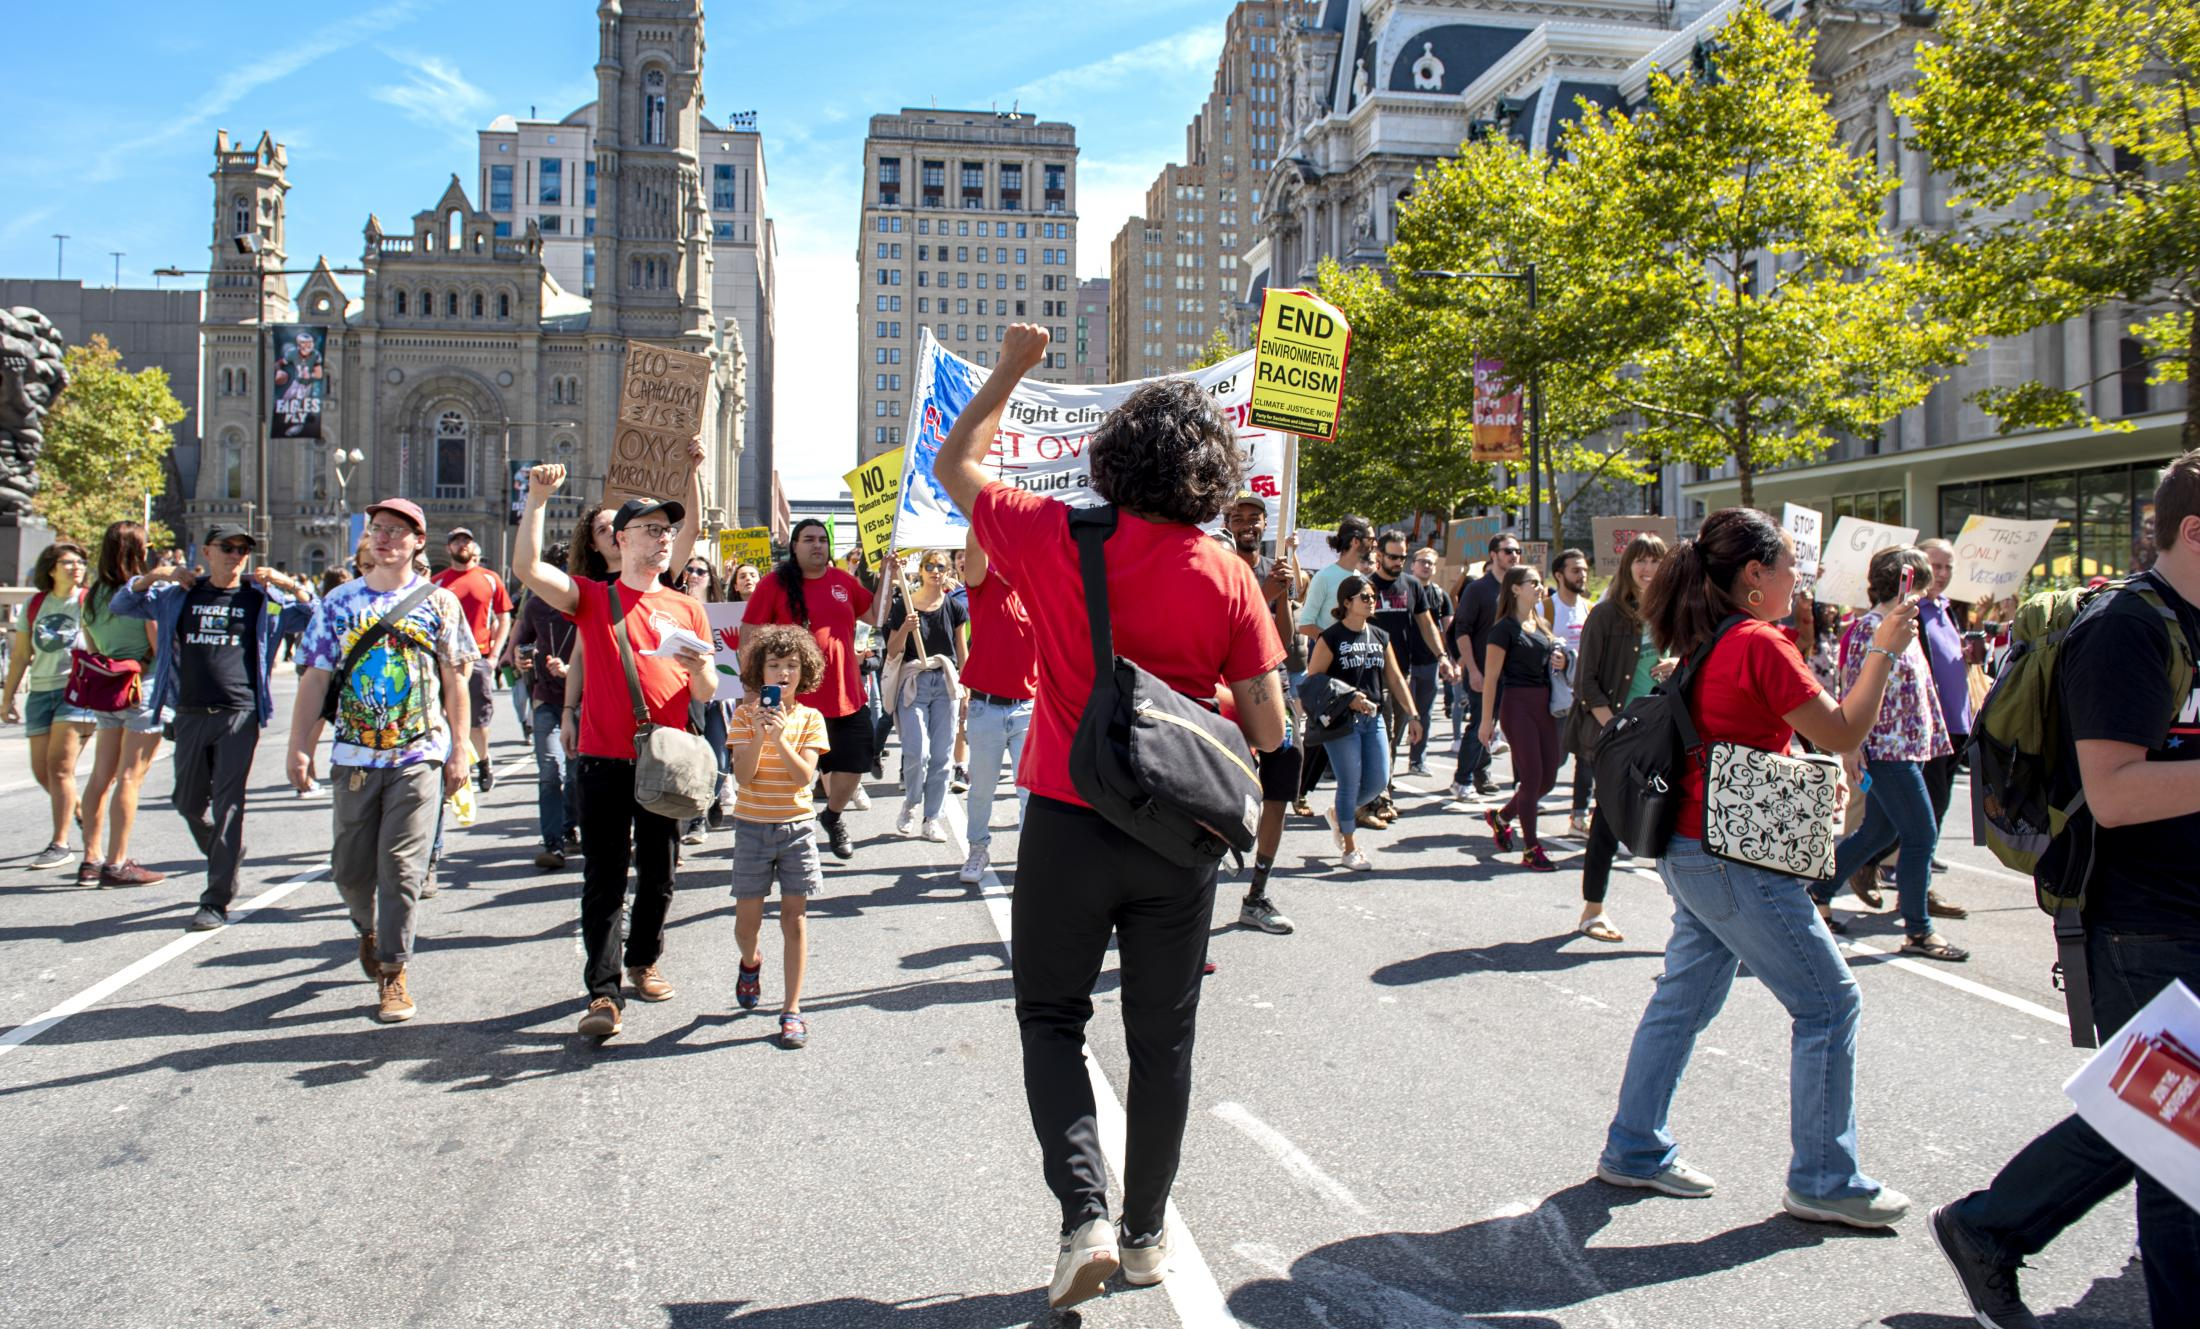 Protestors gather at City Hall for a global, youth-led demonstration protest related to climate change in Philadelphia, Sept. 19, 2019.